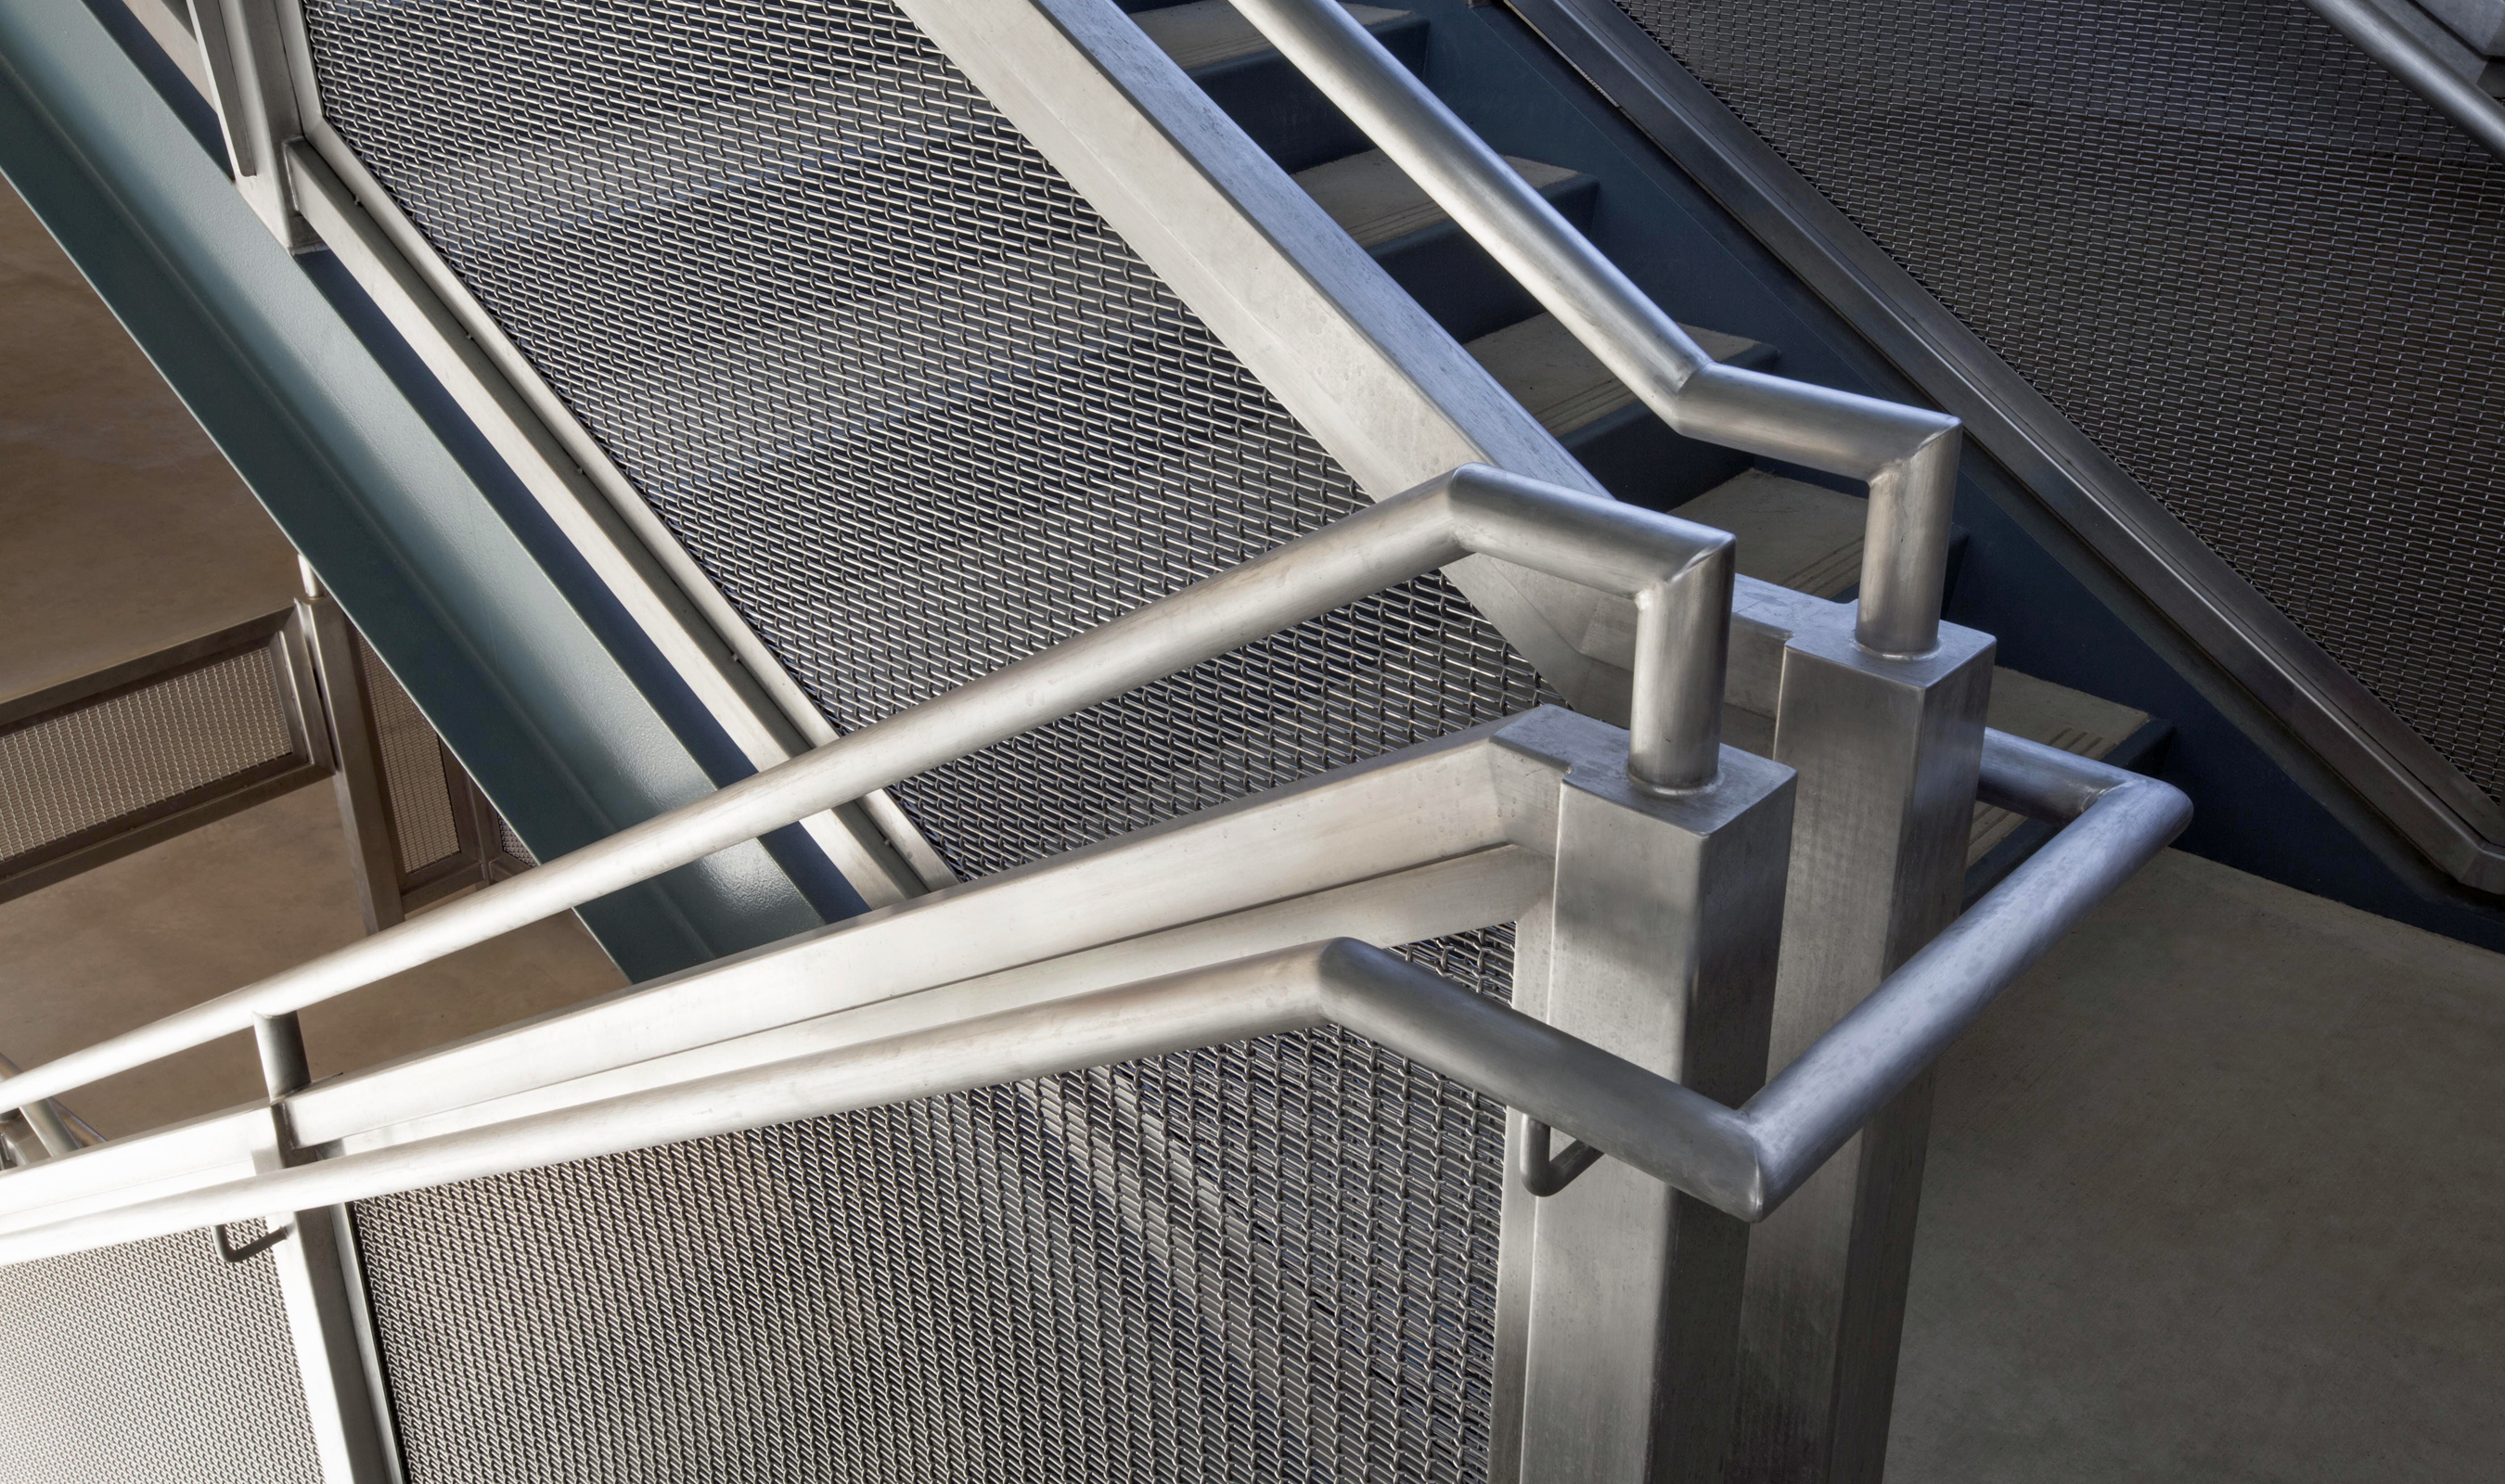 On the garage's staircases, walkways and pedestrian bridge, Banker Wire FPZ-10 woven wire mesh provides durability, fall protection and a unique look.